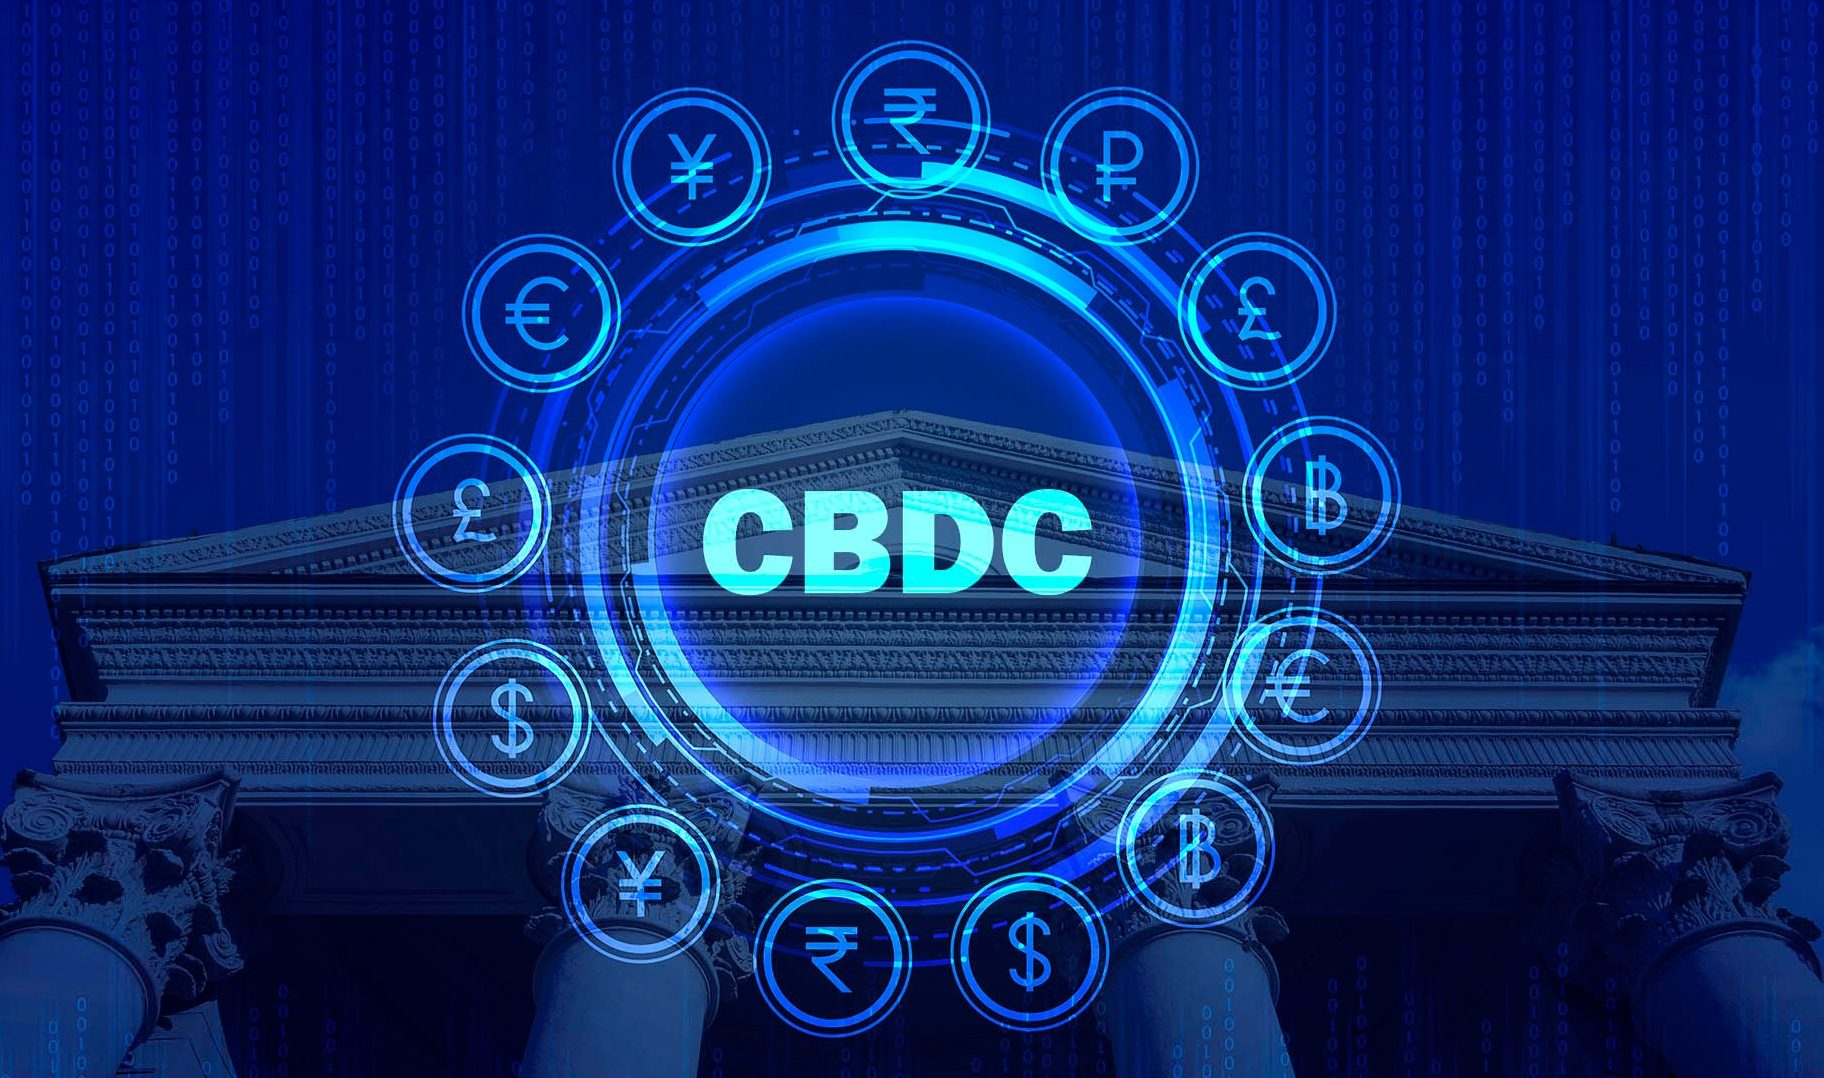 Why the Nordics will be the first to fully integrate CBDC